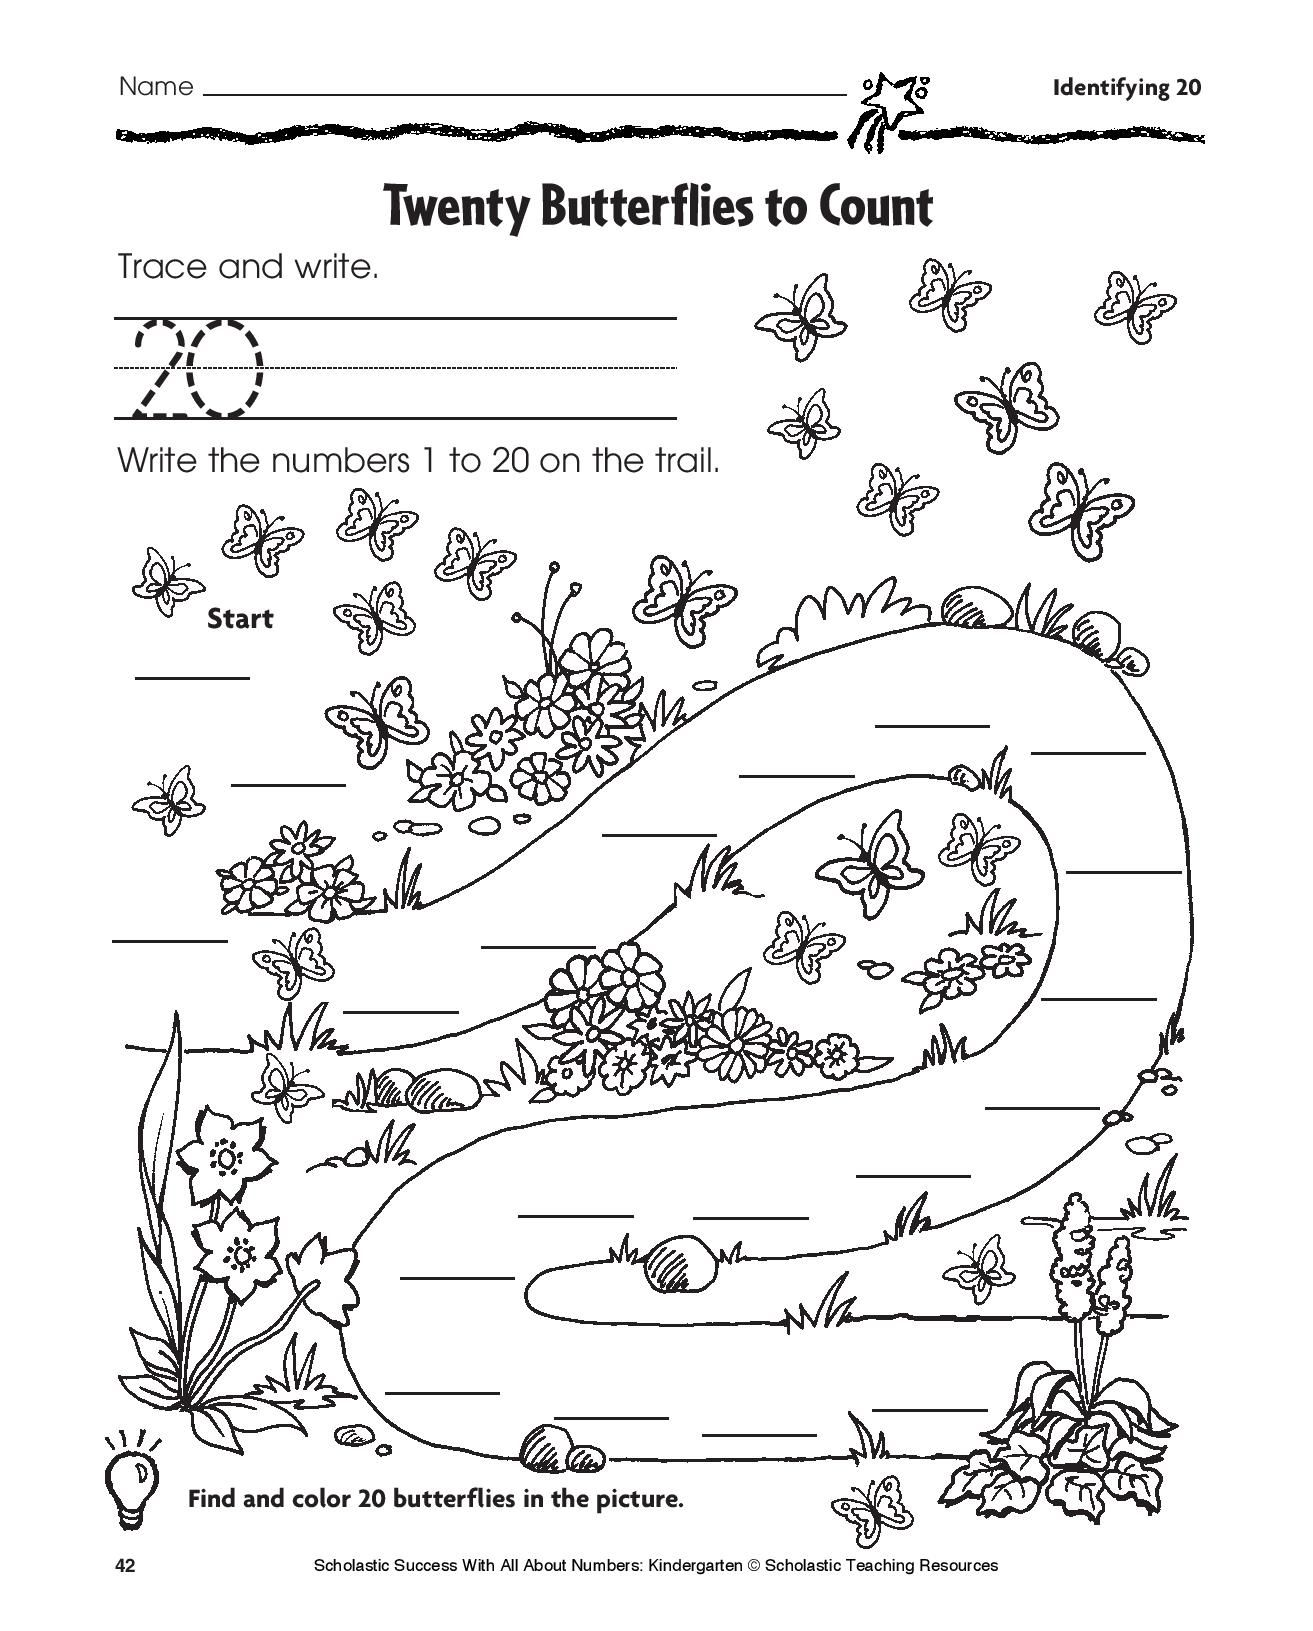 Predownload: This Easy Printable Math Sheet Will Help Young Children Count And Color 20 Butterflies Ages 3 4 Math Practices Math Printables The Twenties [ 1631 x 1313 Pixel ]